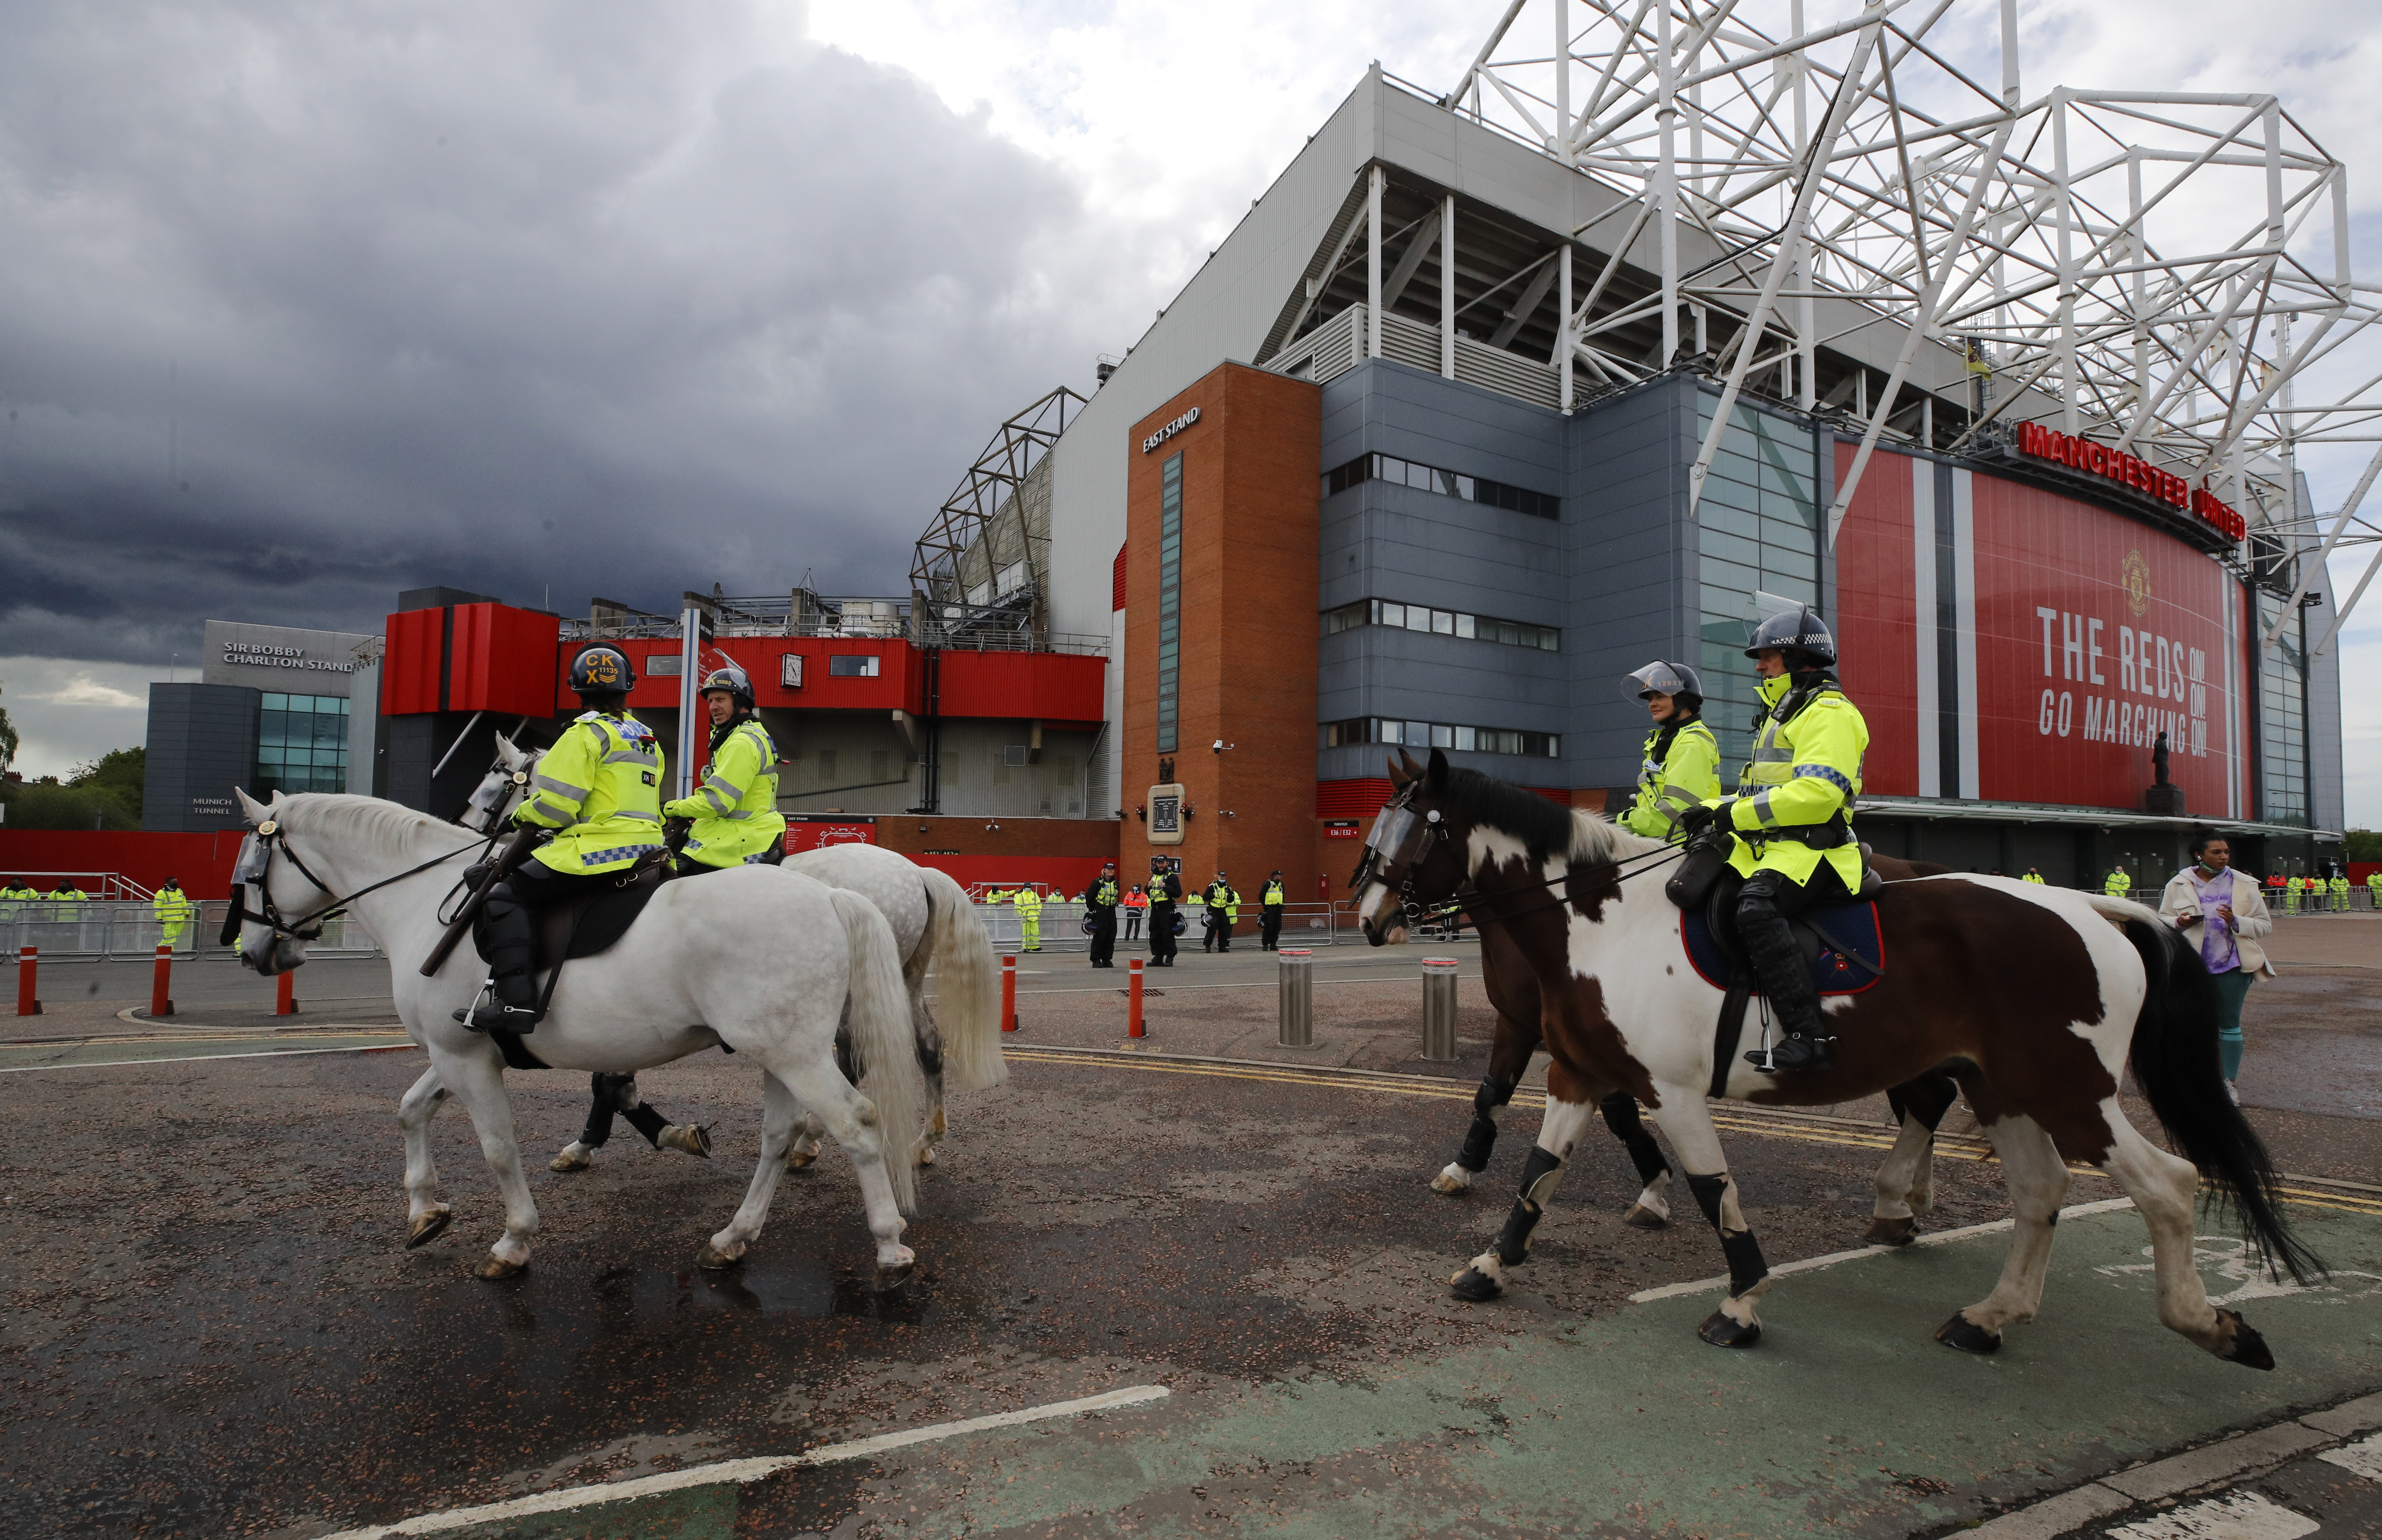 Soccer Football - Premier League - Manchester United v Leicester City - Old Trafford, Manchester, Britain - May 11, 2021 General view as Police stand guard outside the stadium before the match Reuters/Phil Noble